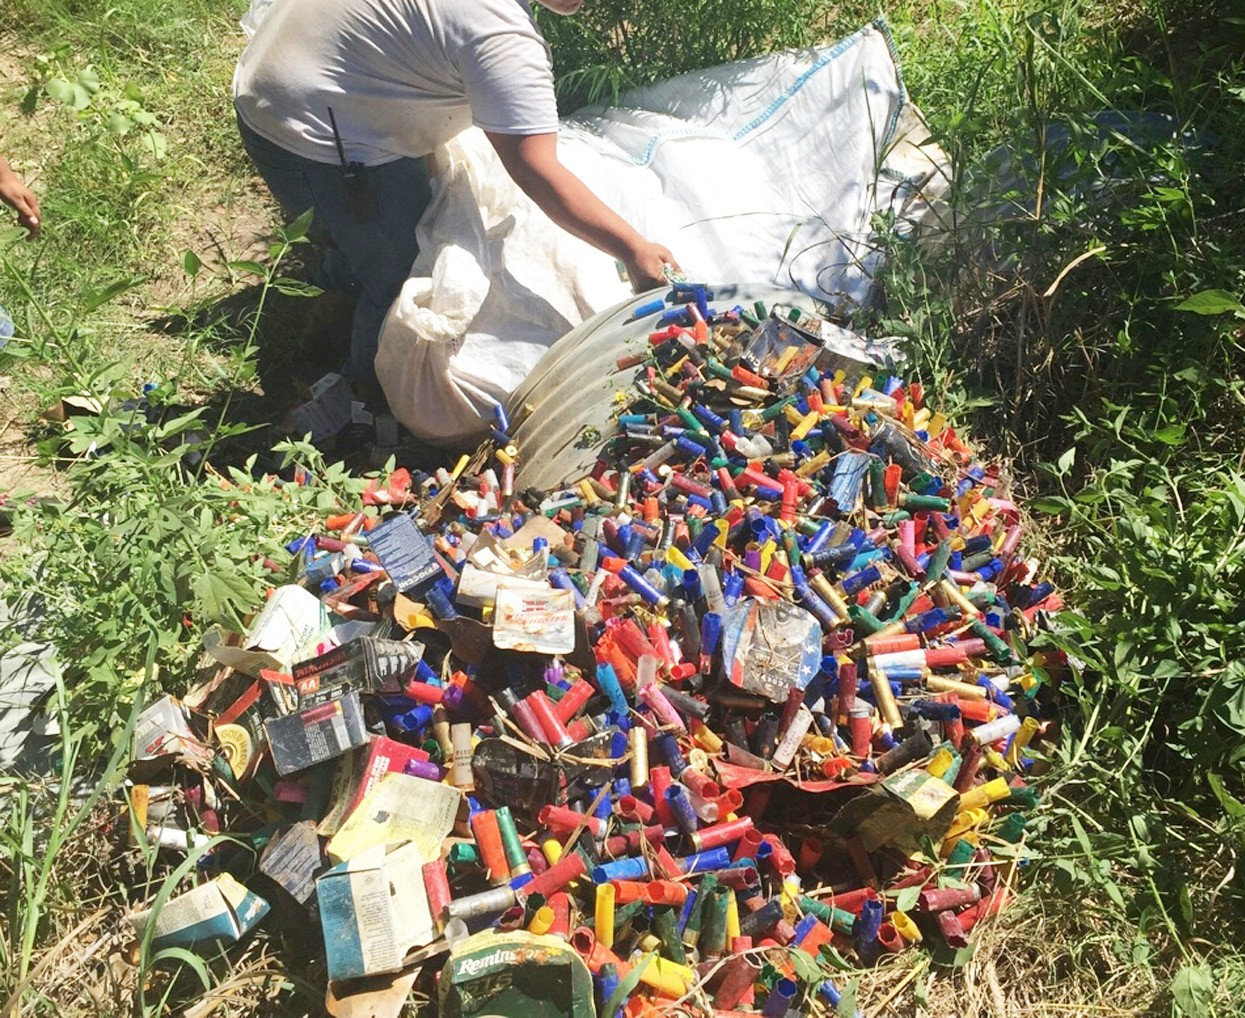 Over 500 pounds of shot gun shell hulls were dumped near Leming on a country road. Two men were arrested by Atascosa County Sheriff Deputies.